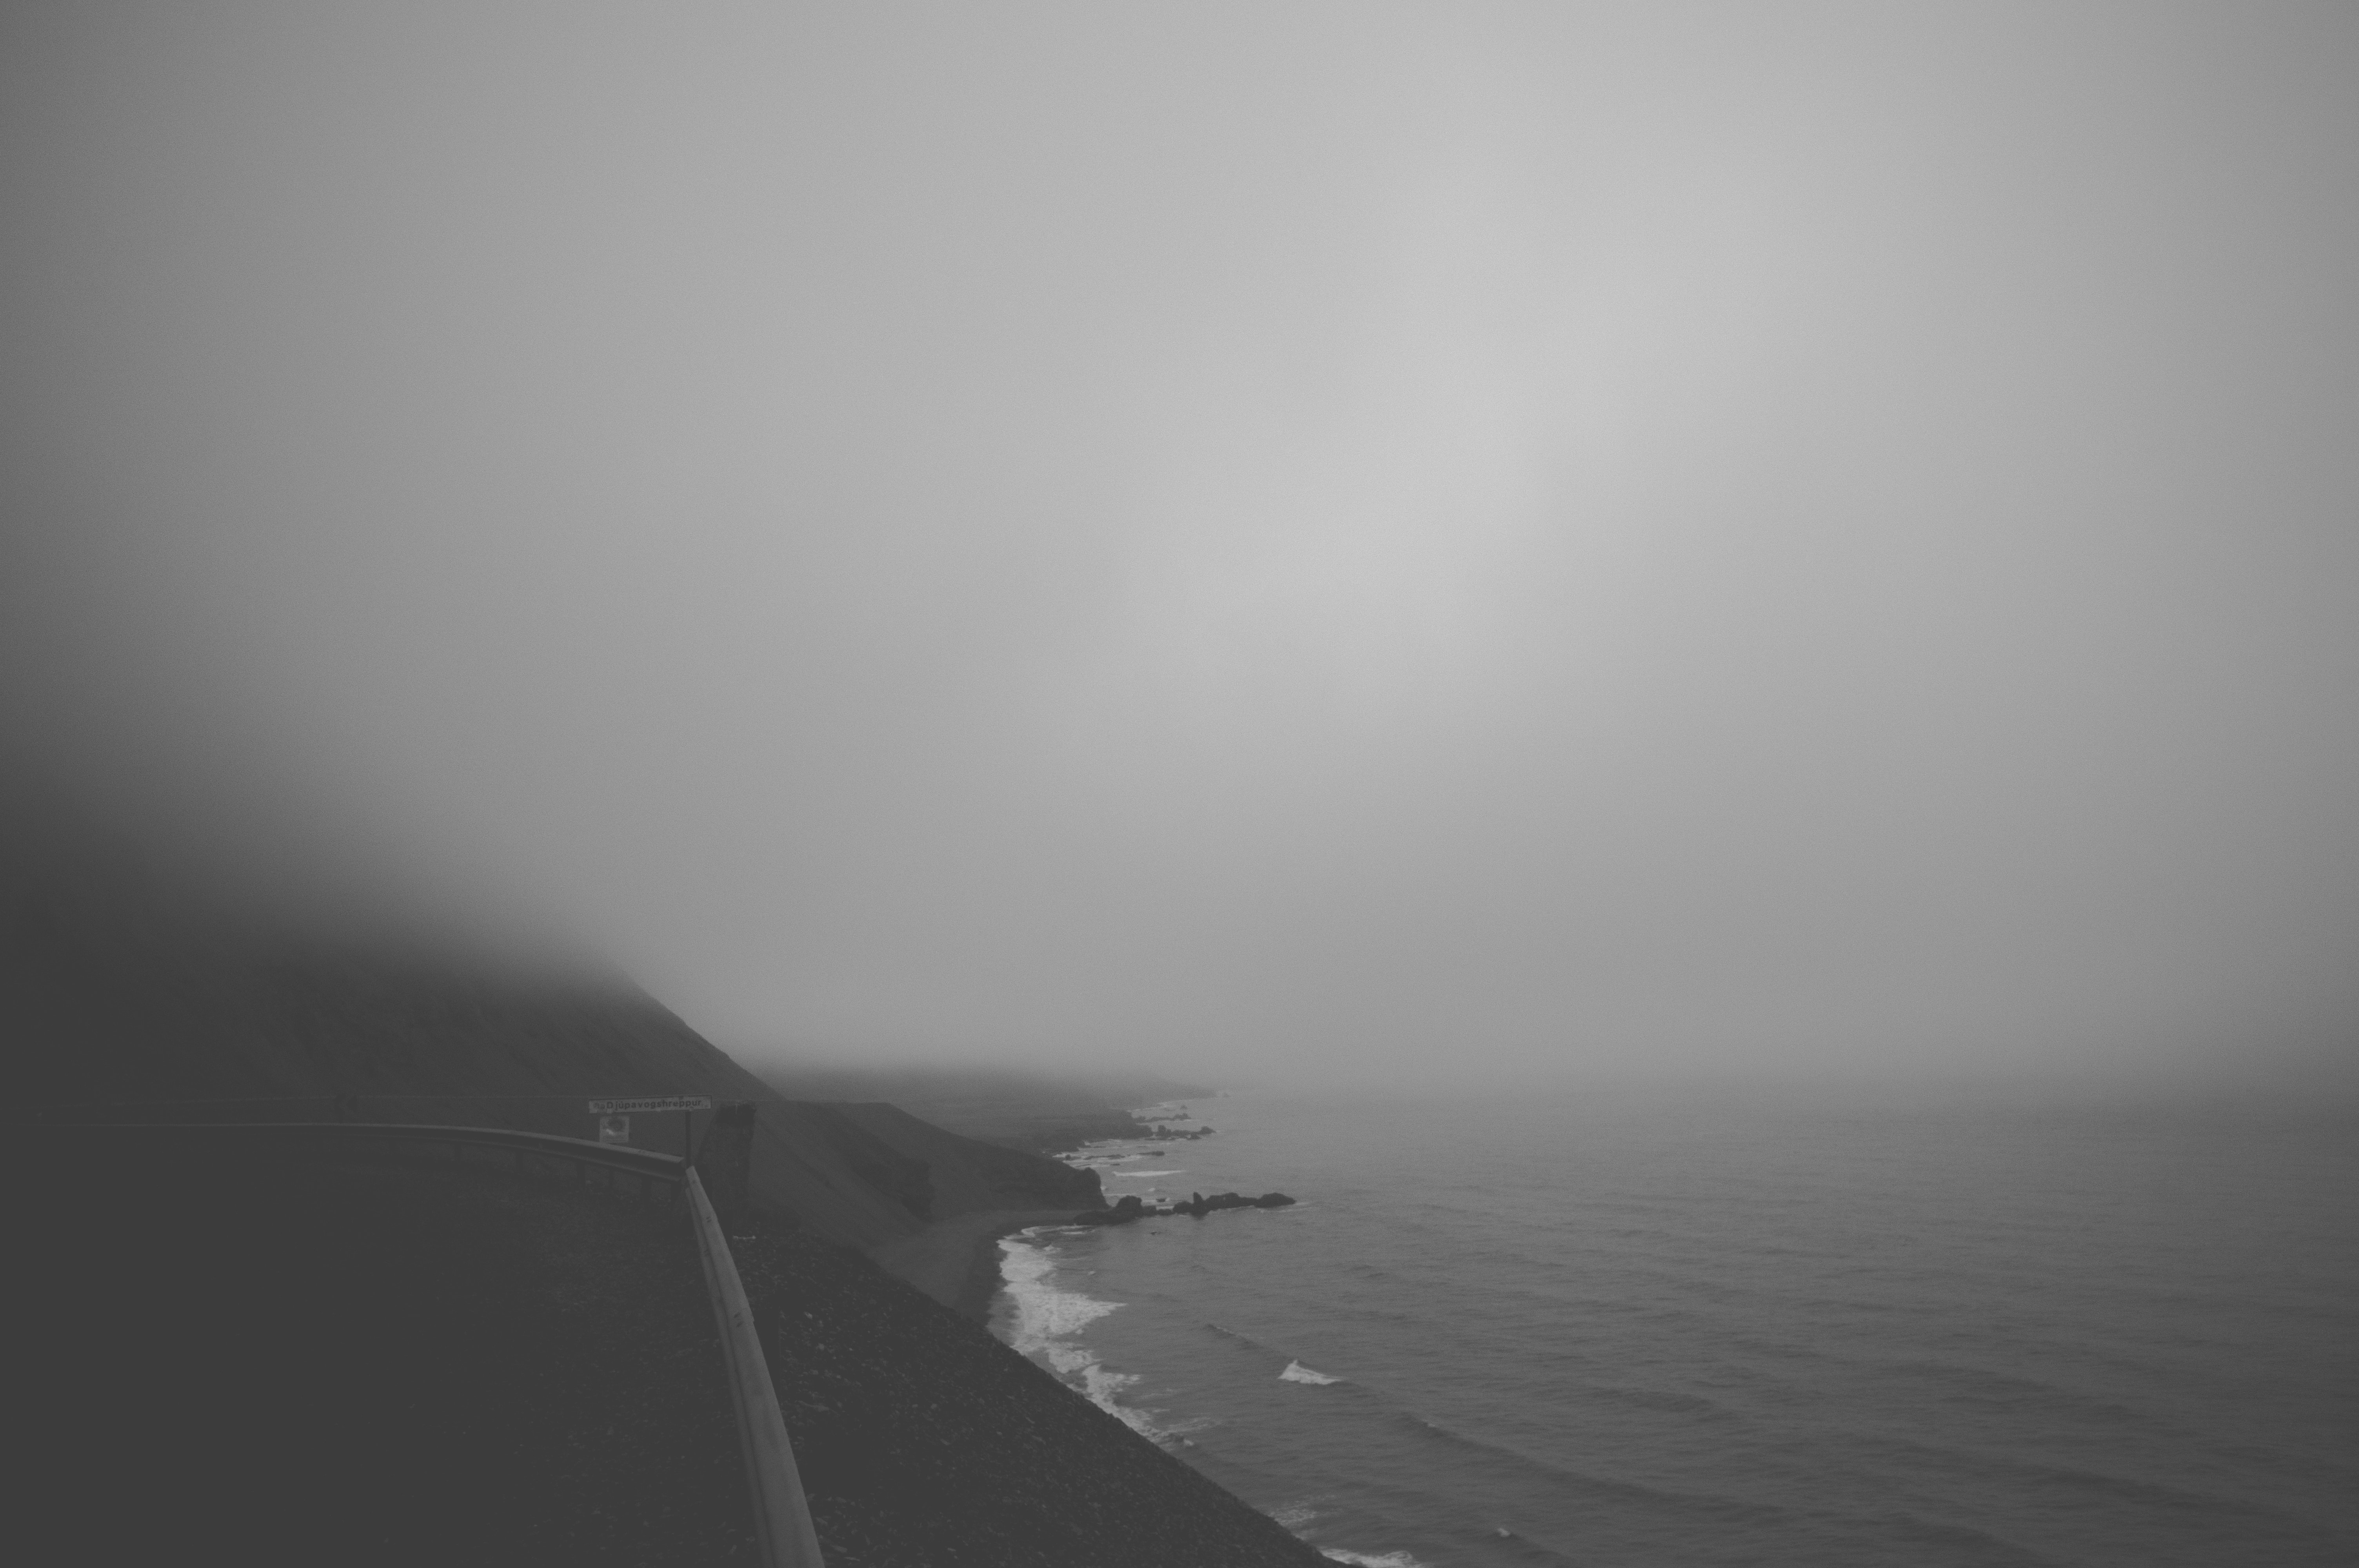 Monochromatic mist covers the seashore and beach below